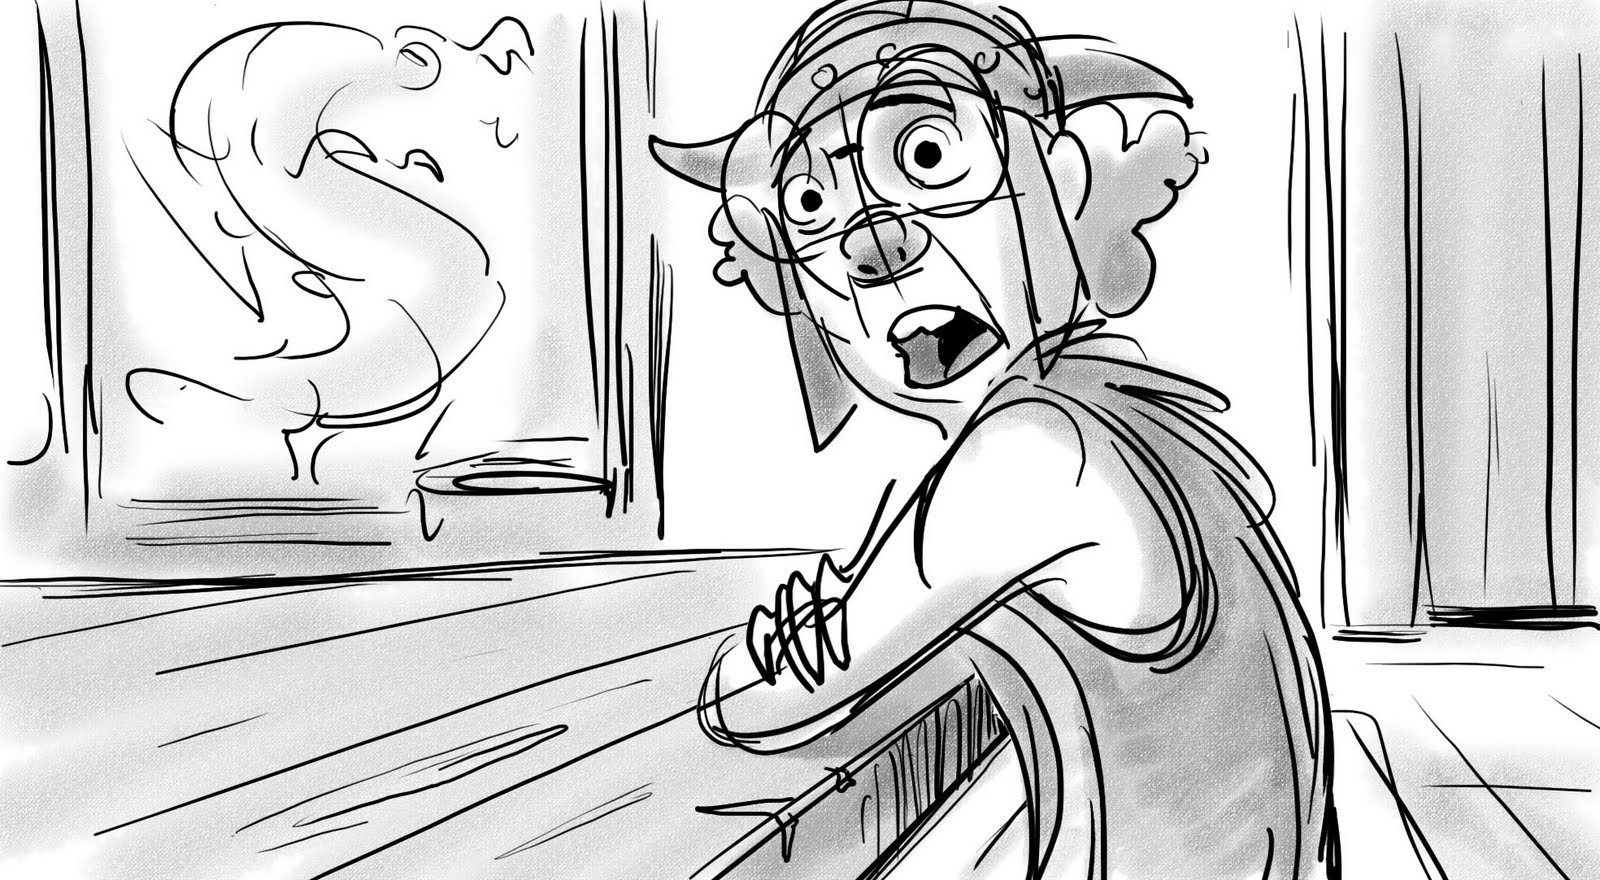 How To Train Your Dragon Storyboard 2